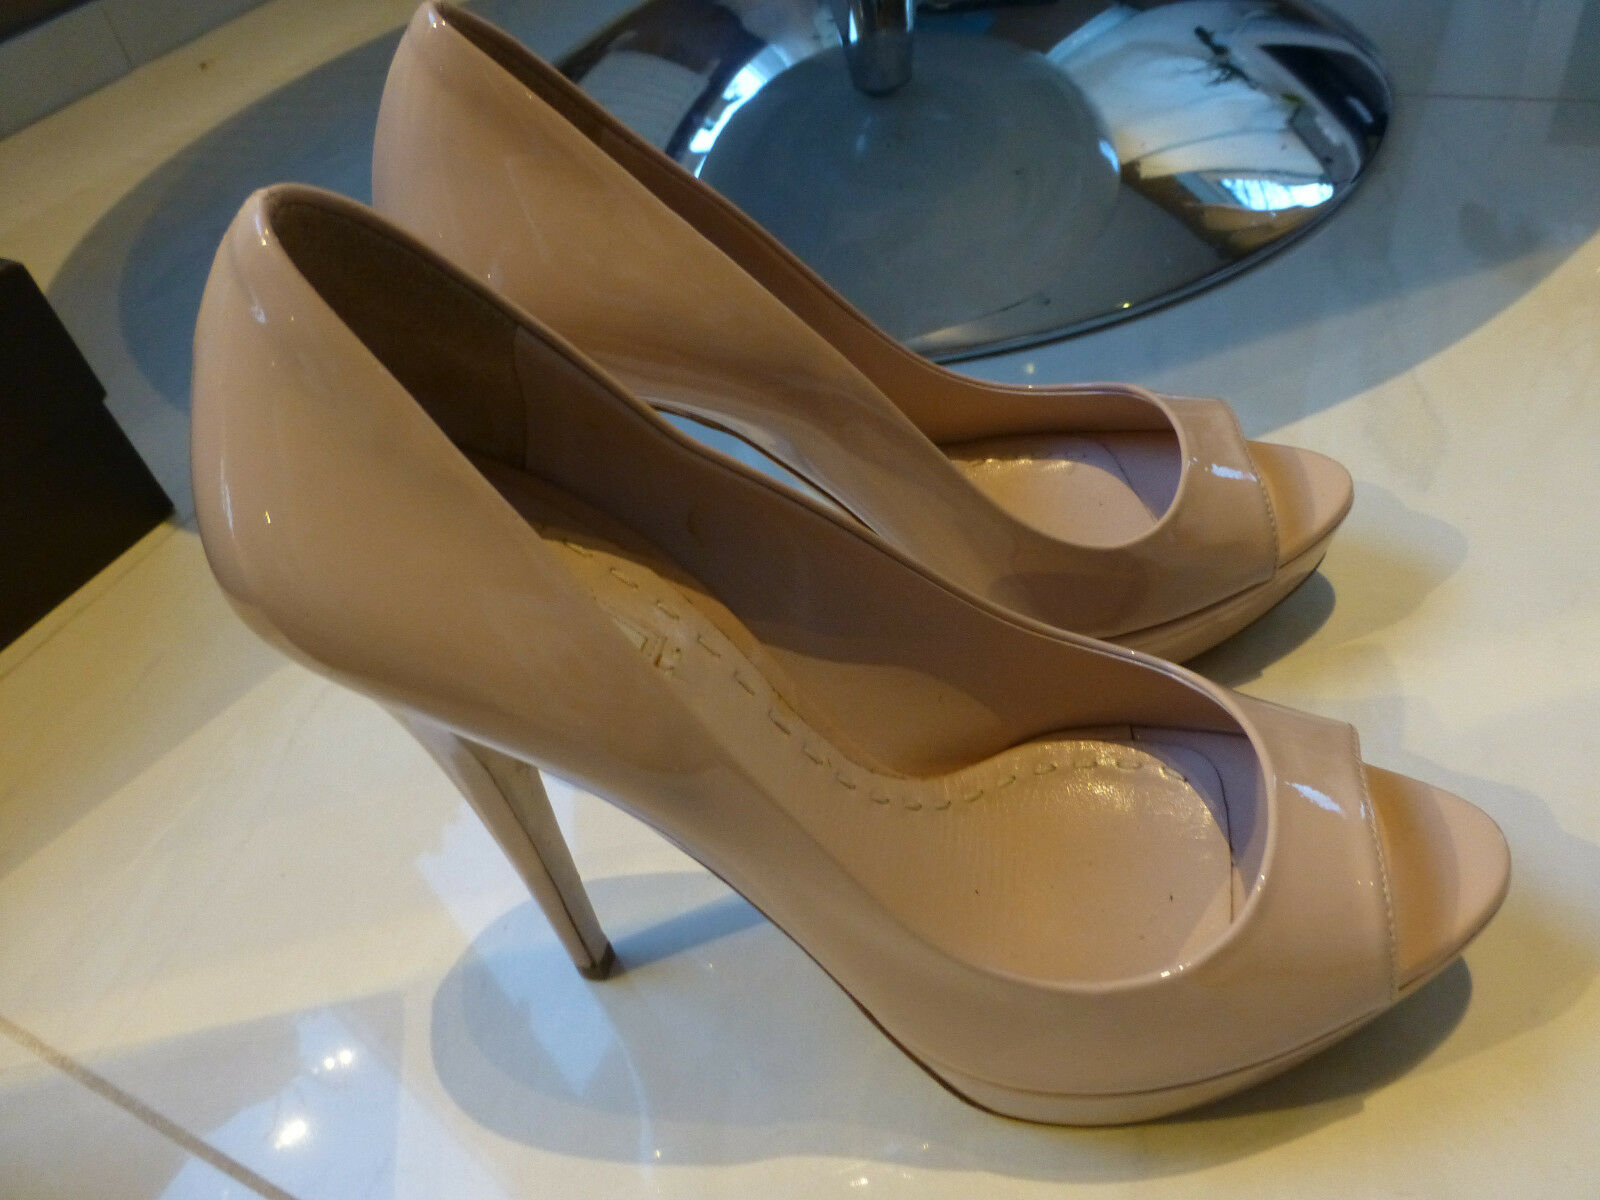 shoes by Miu Miu Patent Leather